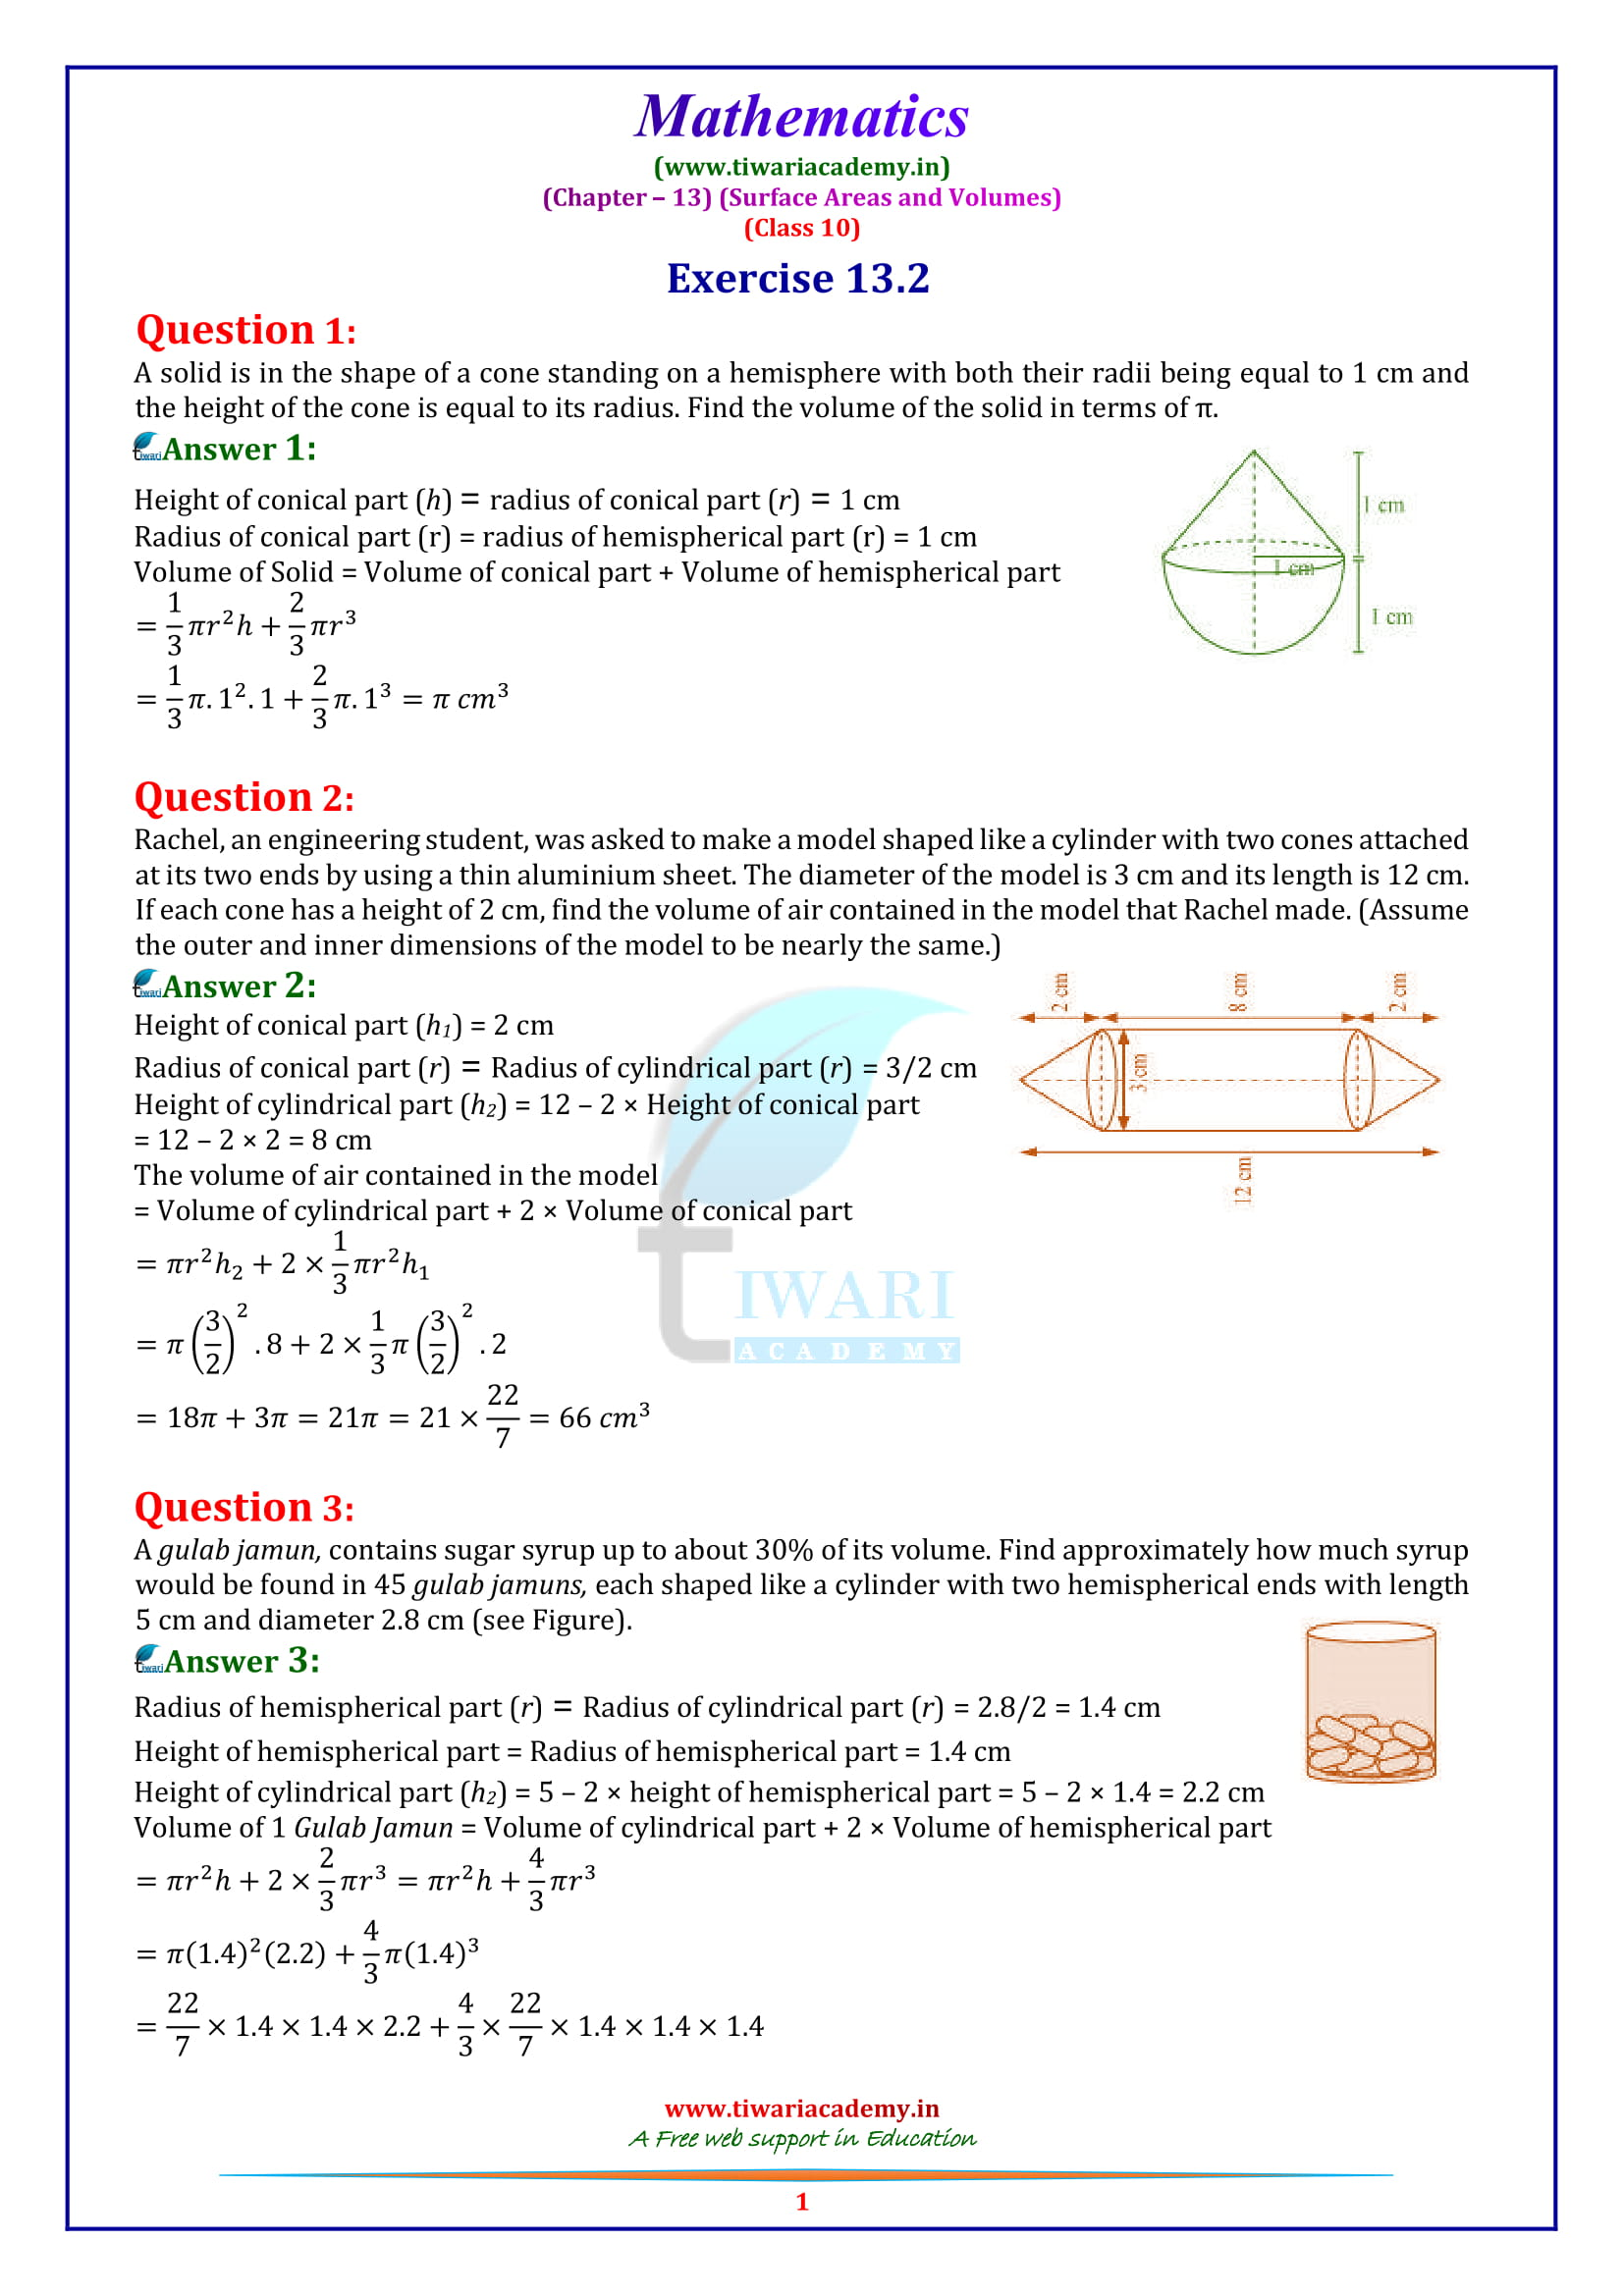 NCERT Solutions for Class 10 Maths Chapter 13 Exercise 13.2 in english medium